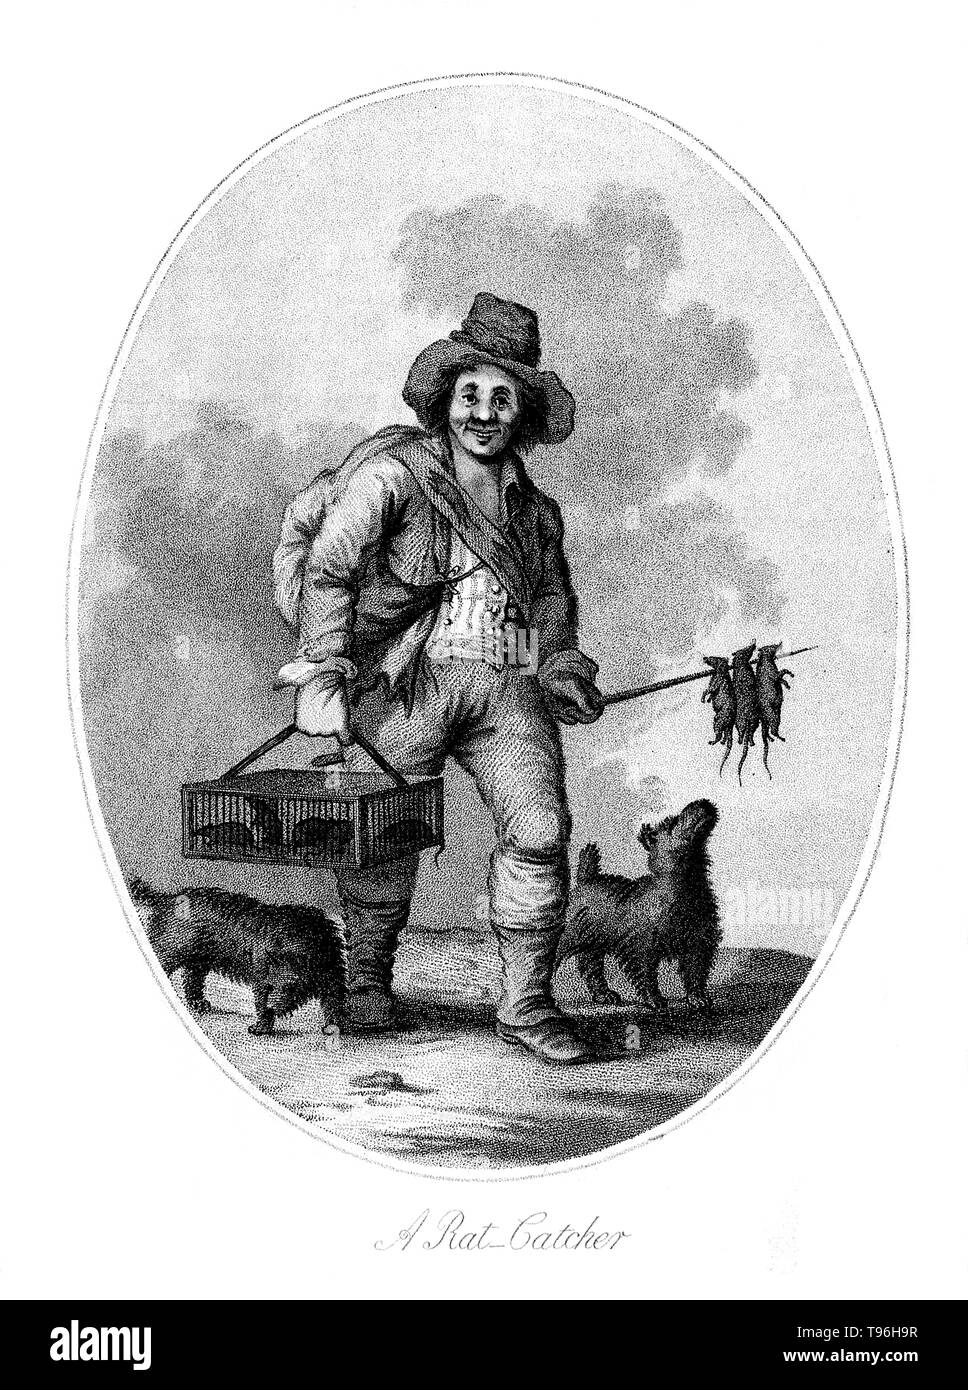 A rat-catcher (accompanied by two dogs) carrying a cage of live rats in his right hand and a sharpened wooden stick with dead rats dangling from it in his left. A rat-catcher is a person who practices rat-catching as a professional form of pest control. Keeping the rat population under control was practiced in Europe to prevent the spread of diseases, most notoriously the Black Plague, and to prevent damage to food supplies. In modern developed countries, such a professional is otherwise known as a pest control operative or pest technician. Rat-catchers may attempt to capture rats themselves,  - Stock Image